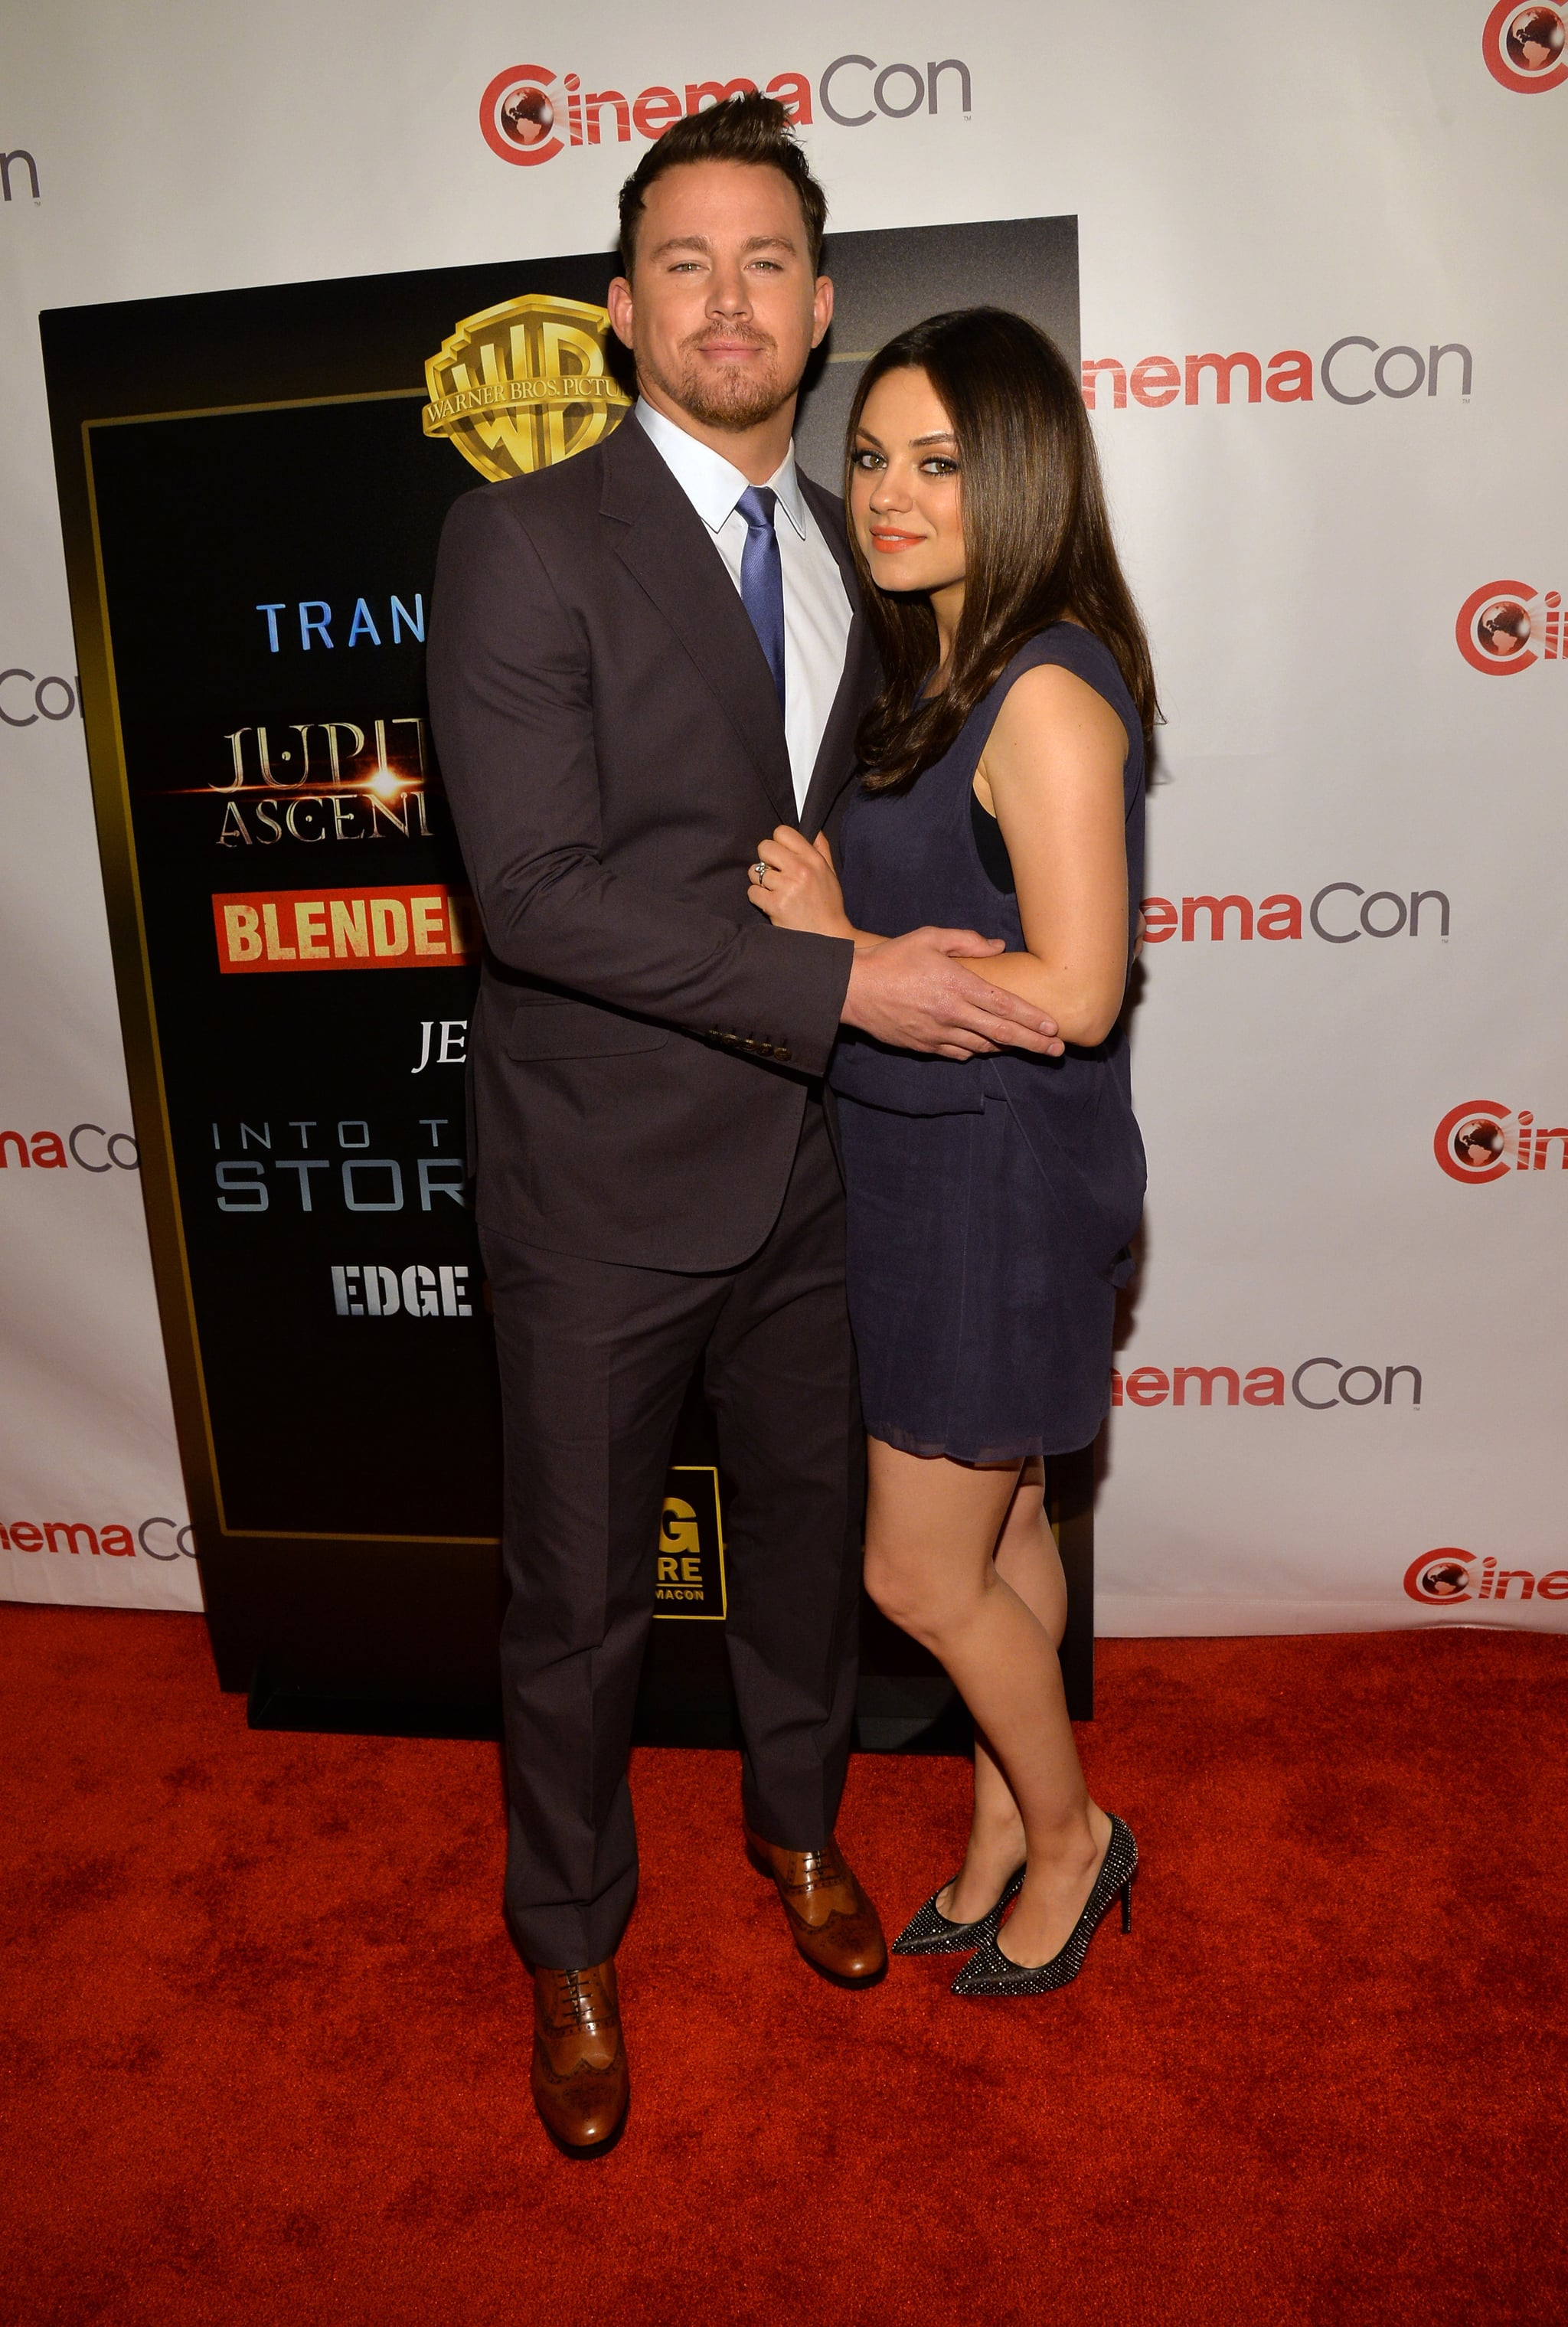 Mila Kunis Takes Her Bump and Bling to CinemaCon